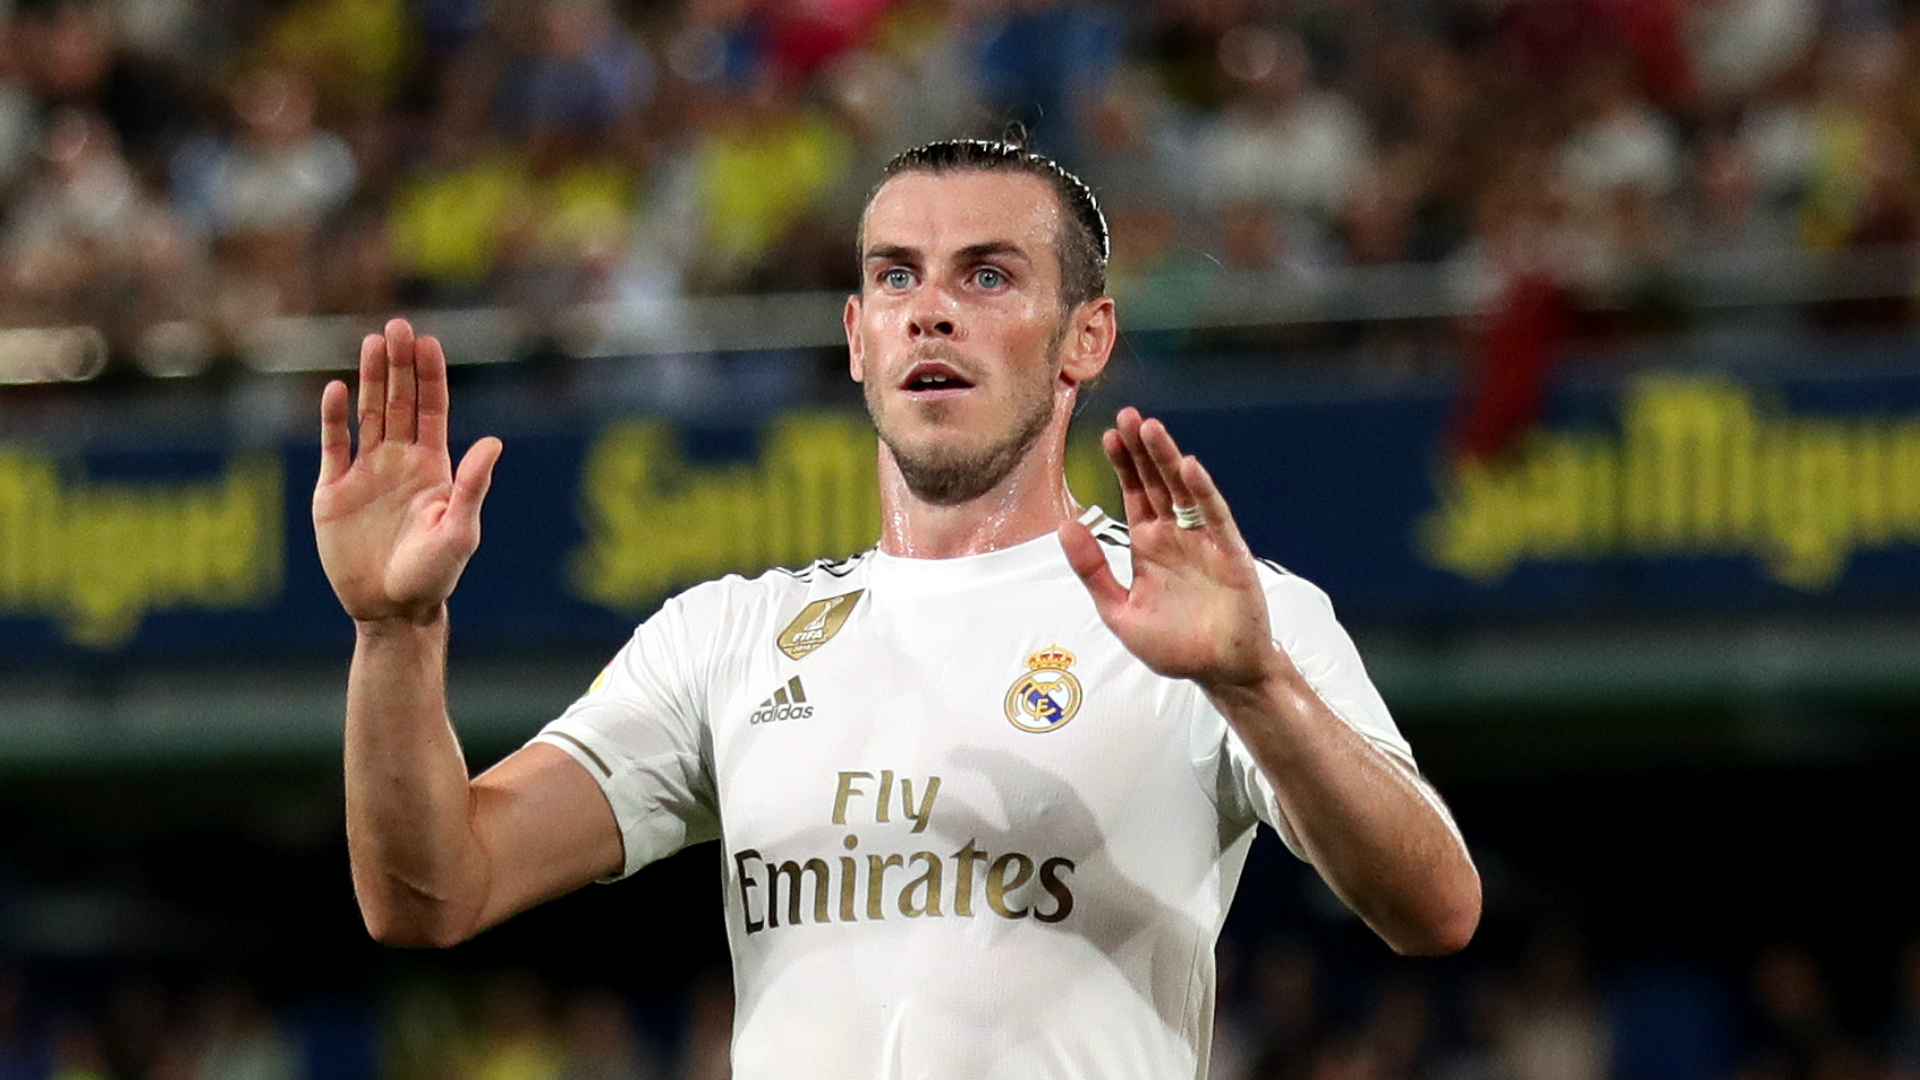 'I've been scapegoated' – Bale expects even more 'turbulence' at Real Madrid